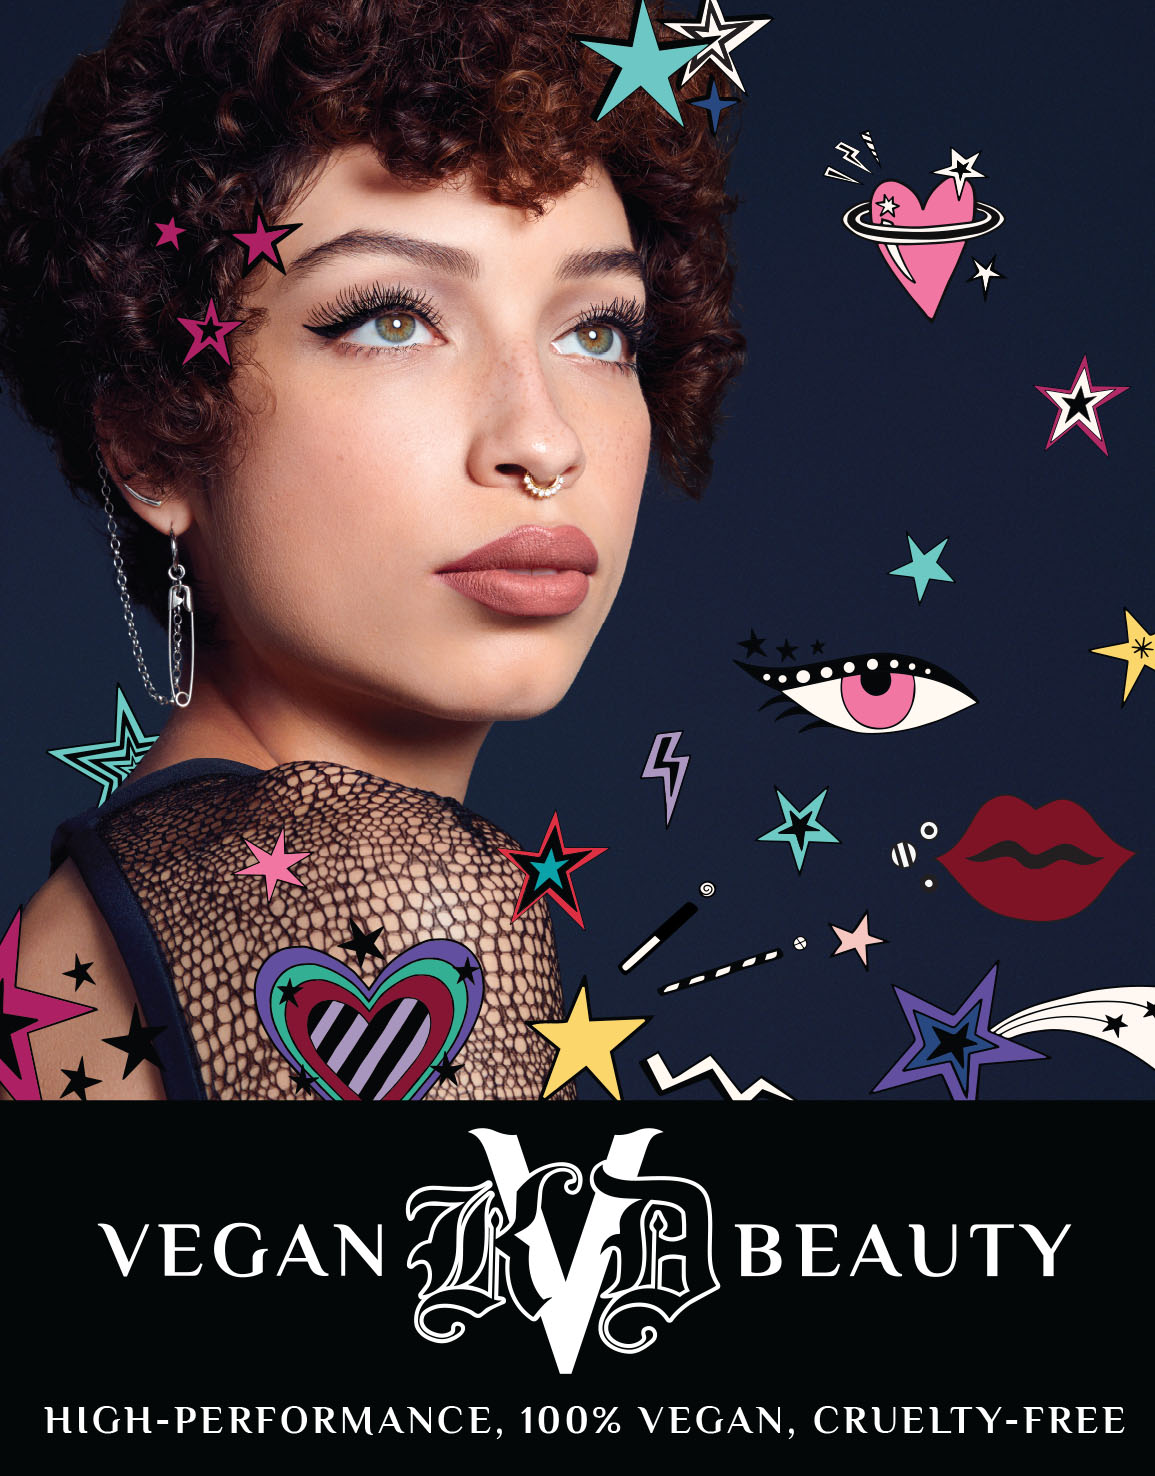 KVD Vegan Beauty Exclusive Campaign Image for Ulta Beauty launch, featuring icons and illustrations by artist Ana Strumpf